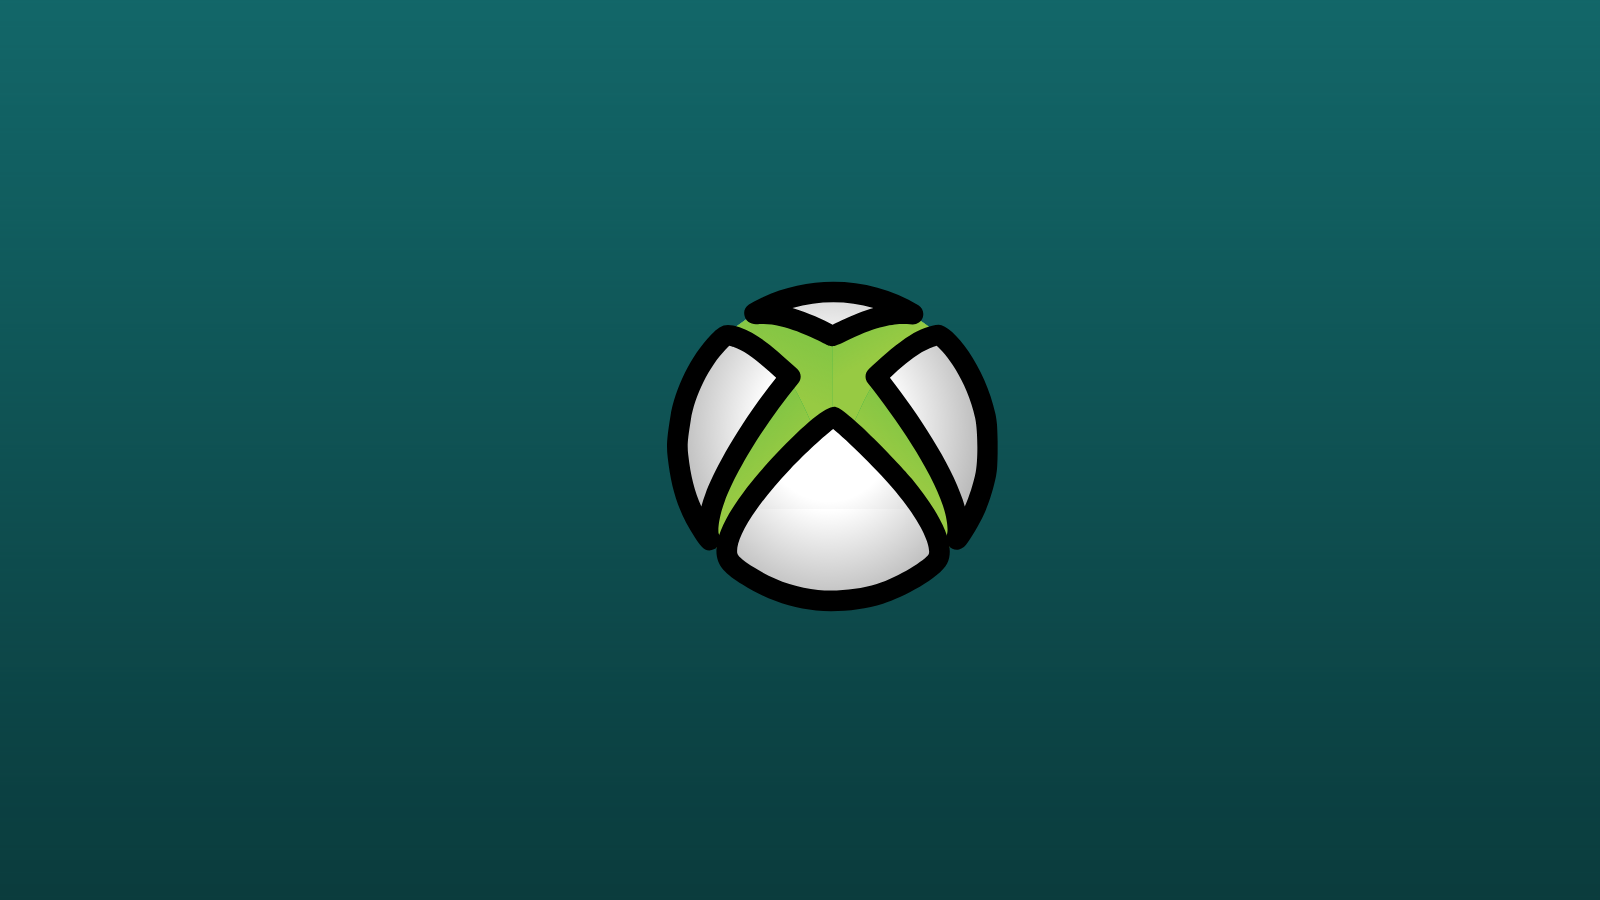 How to Change Xbox Gamertag?